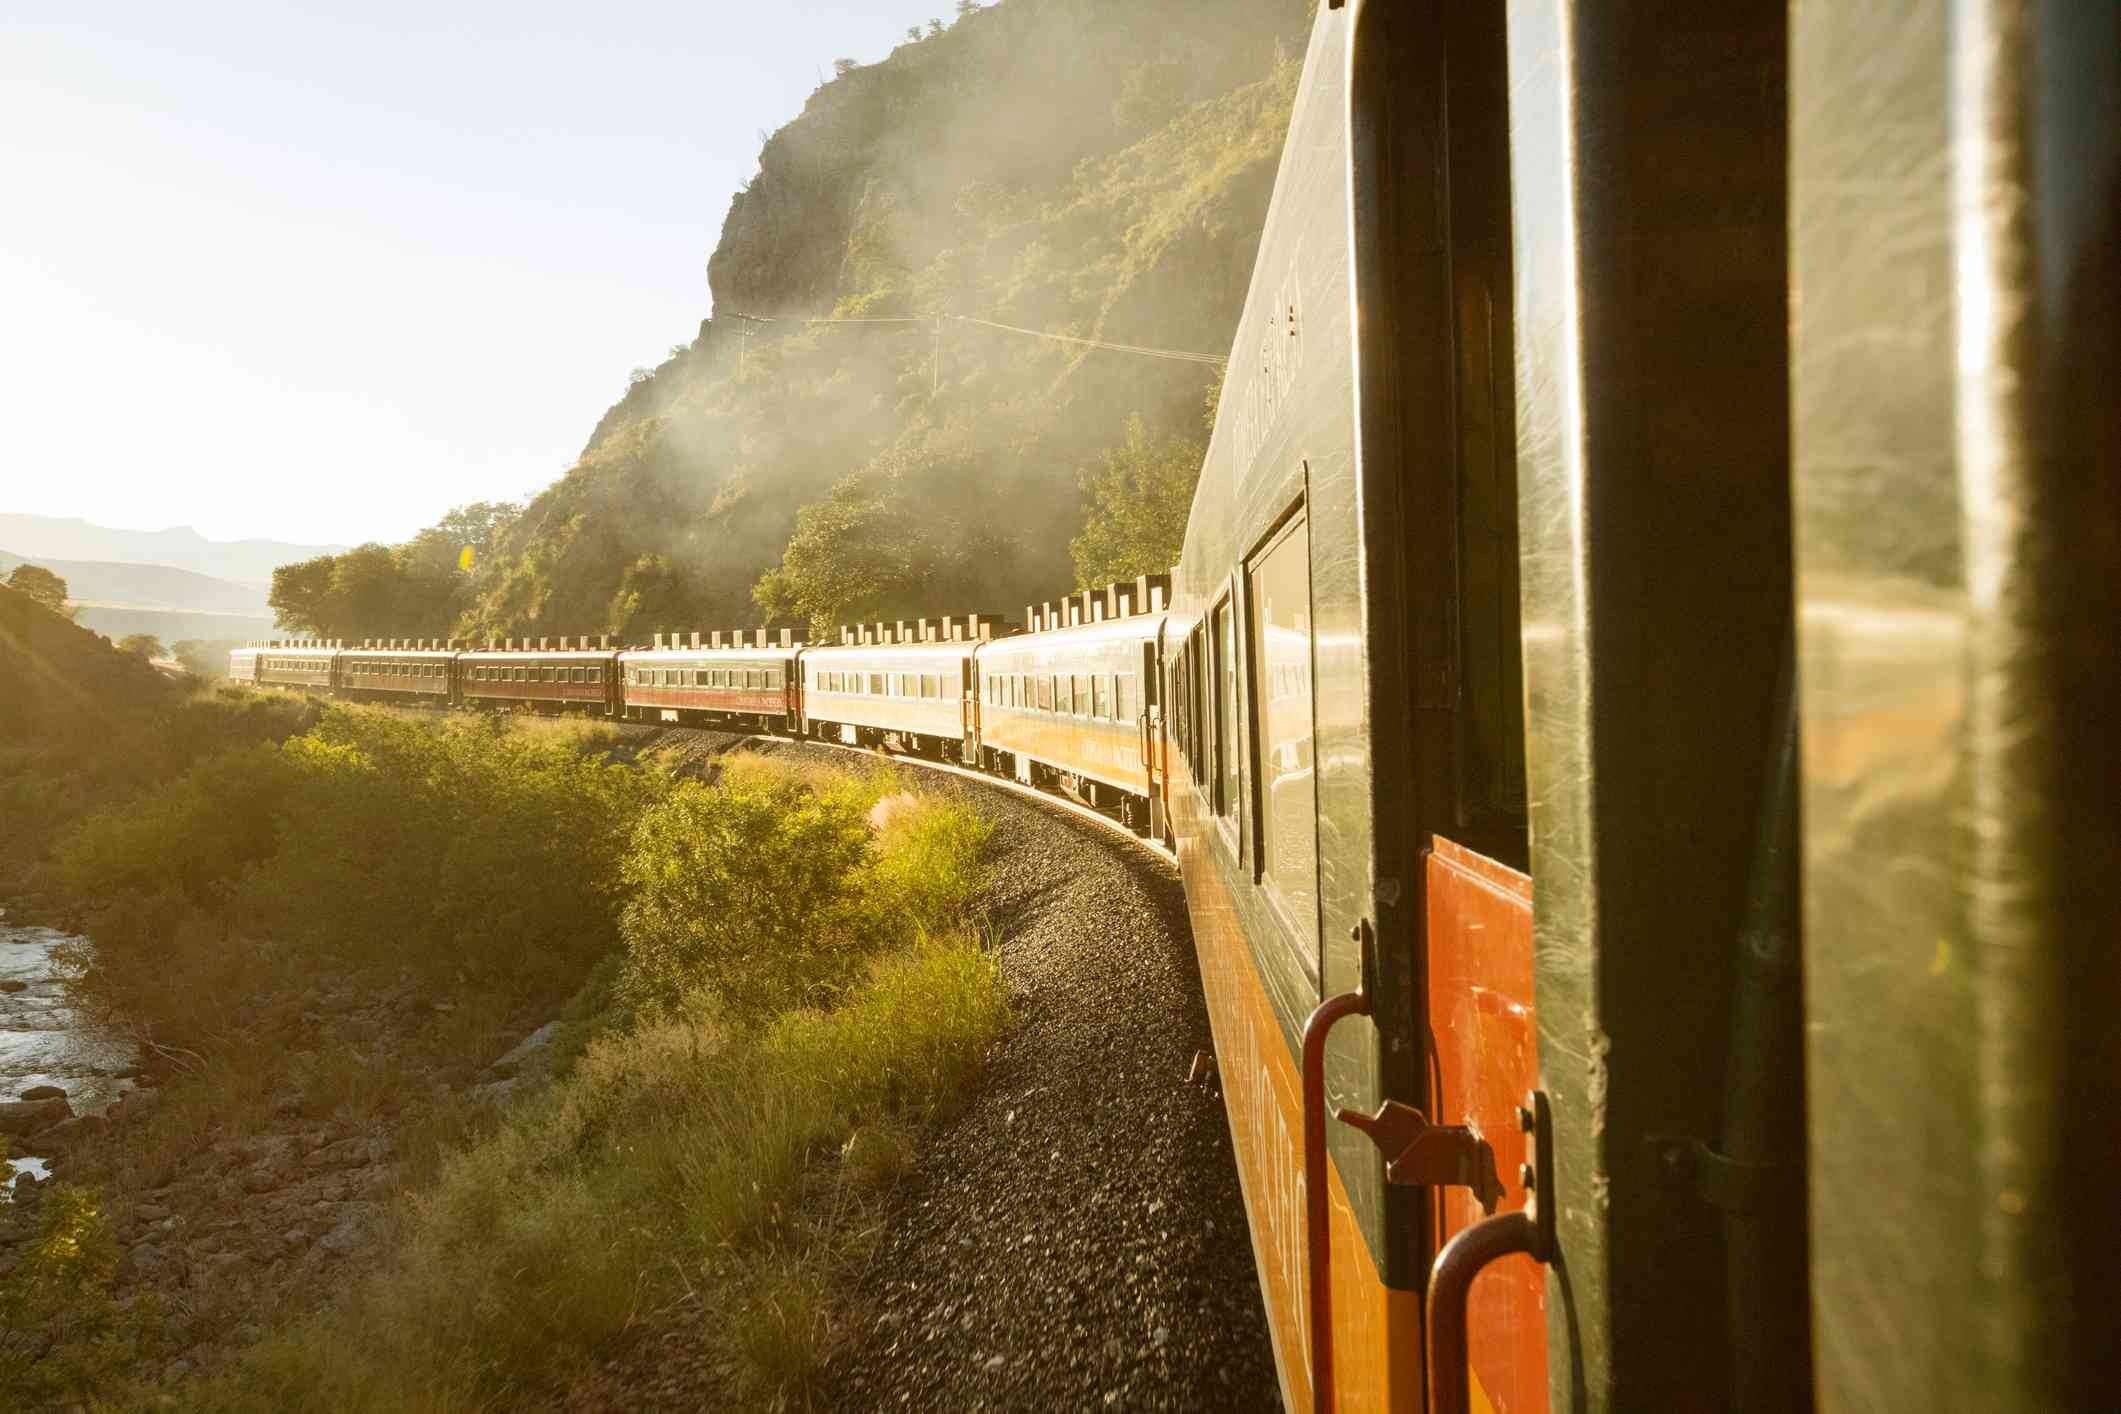 View of train going around a bend from a rear car, Copper Canyon Railway